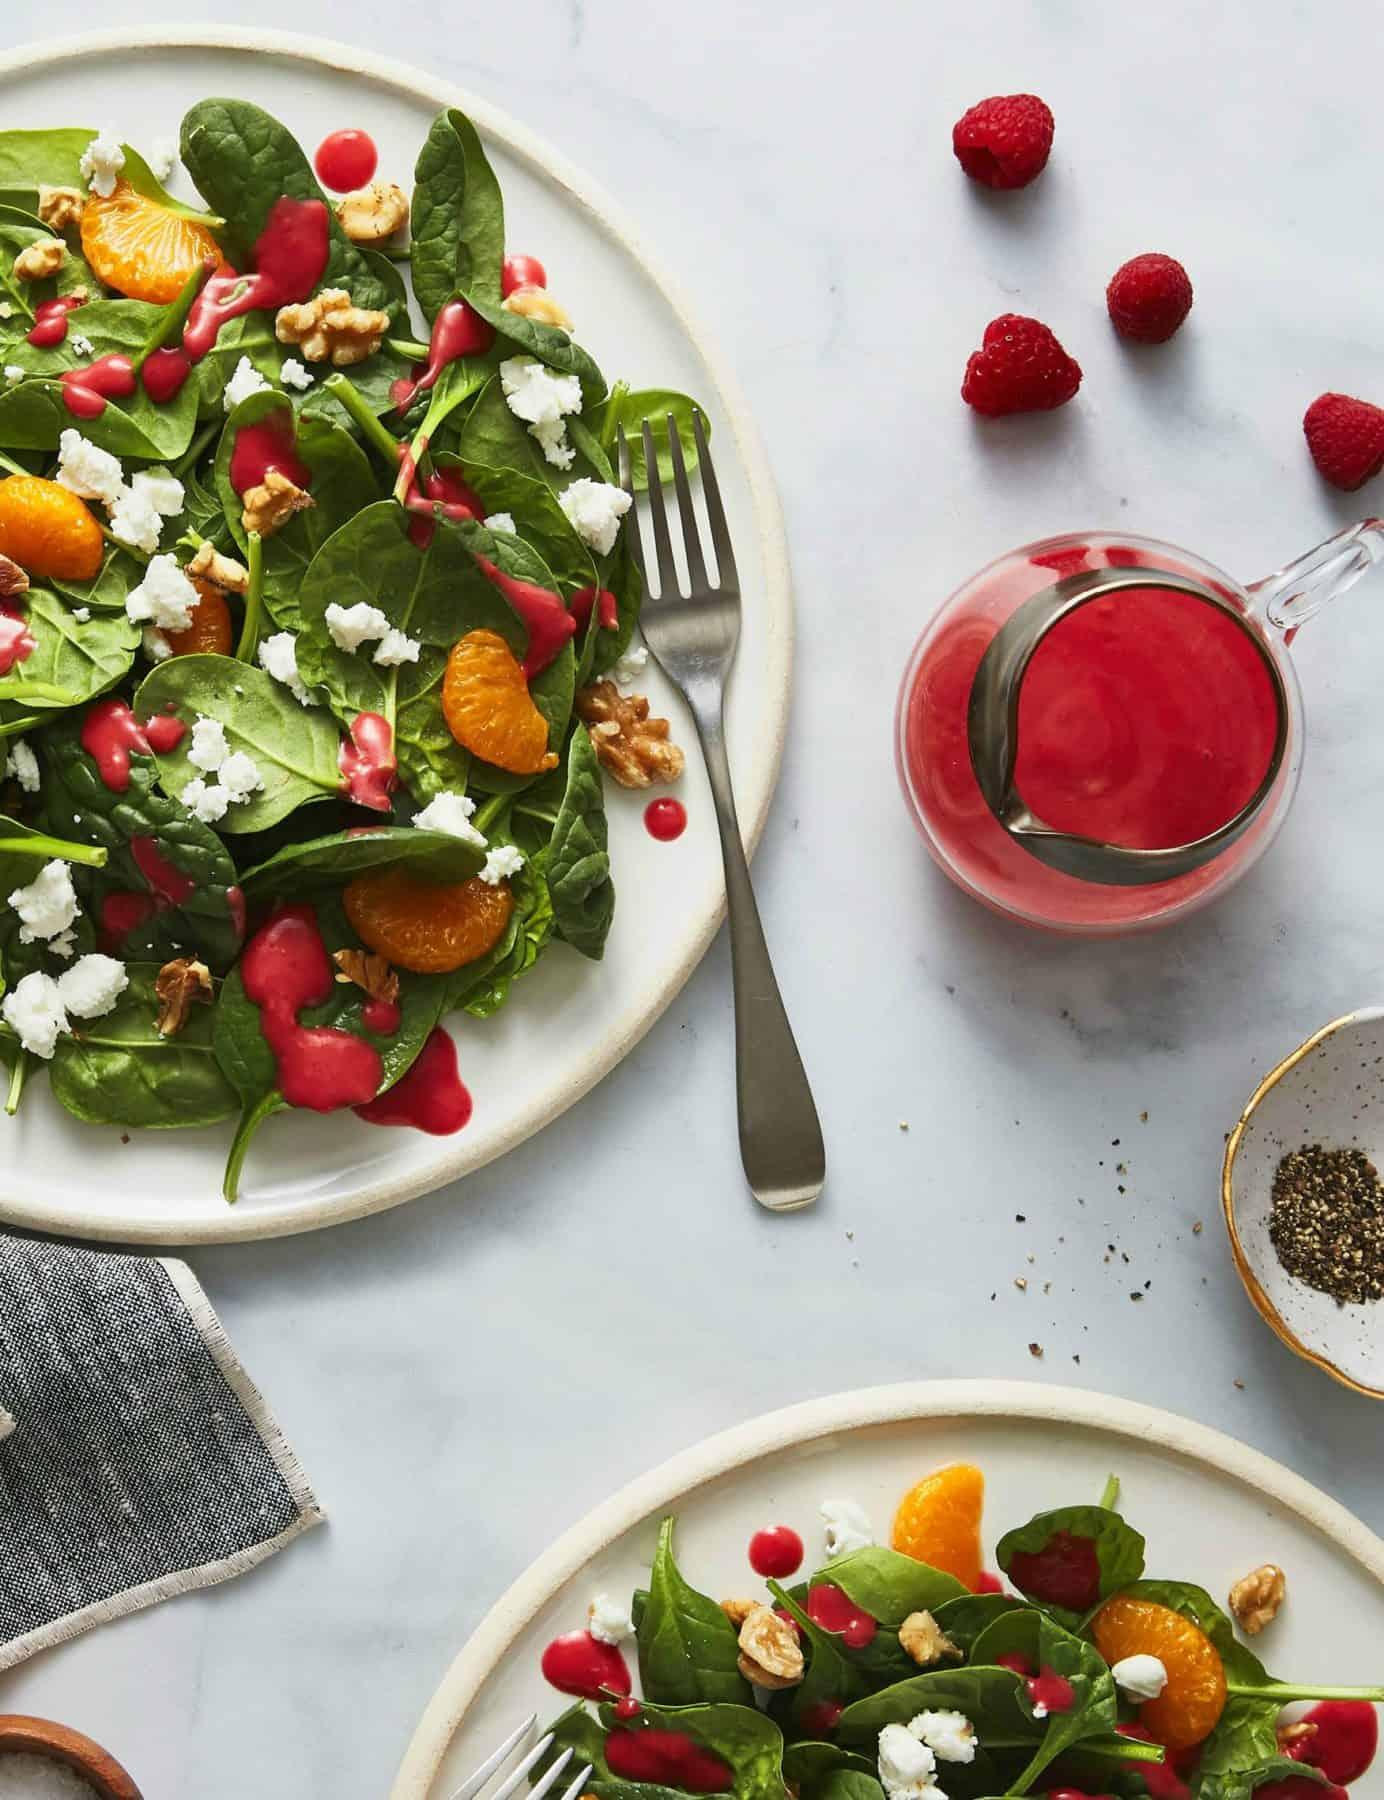 Salad on white plates with raspberry dressing in a carafe